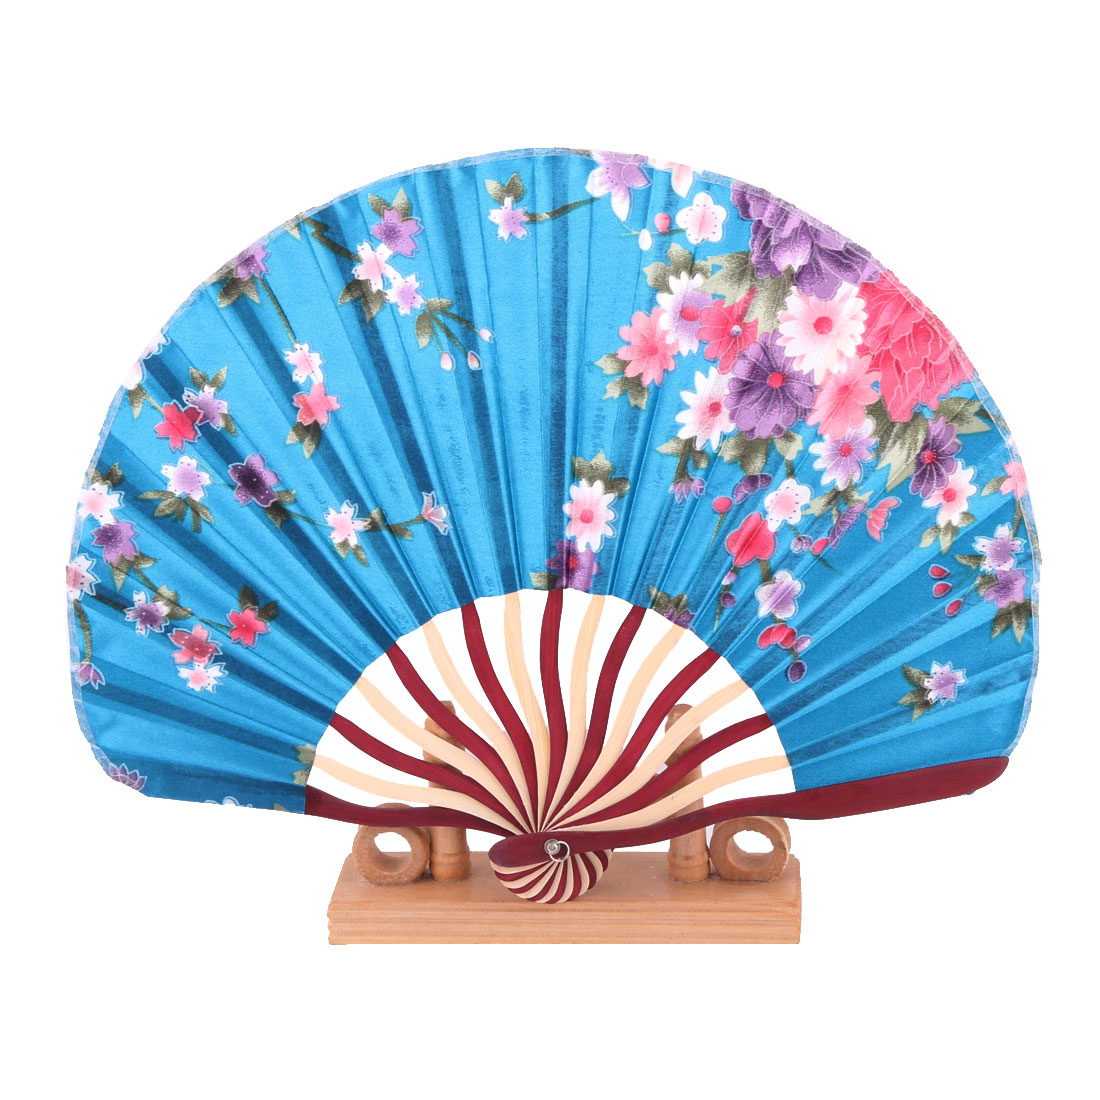 Home Flower Print Chinese Style Folding Hand Fan Display Holder Decor Multicolor 2 in 1